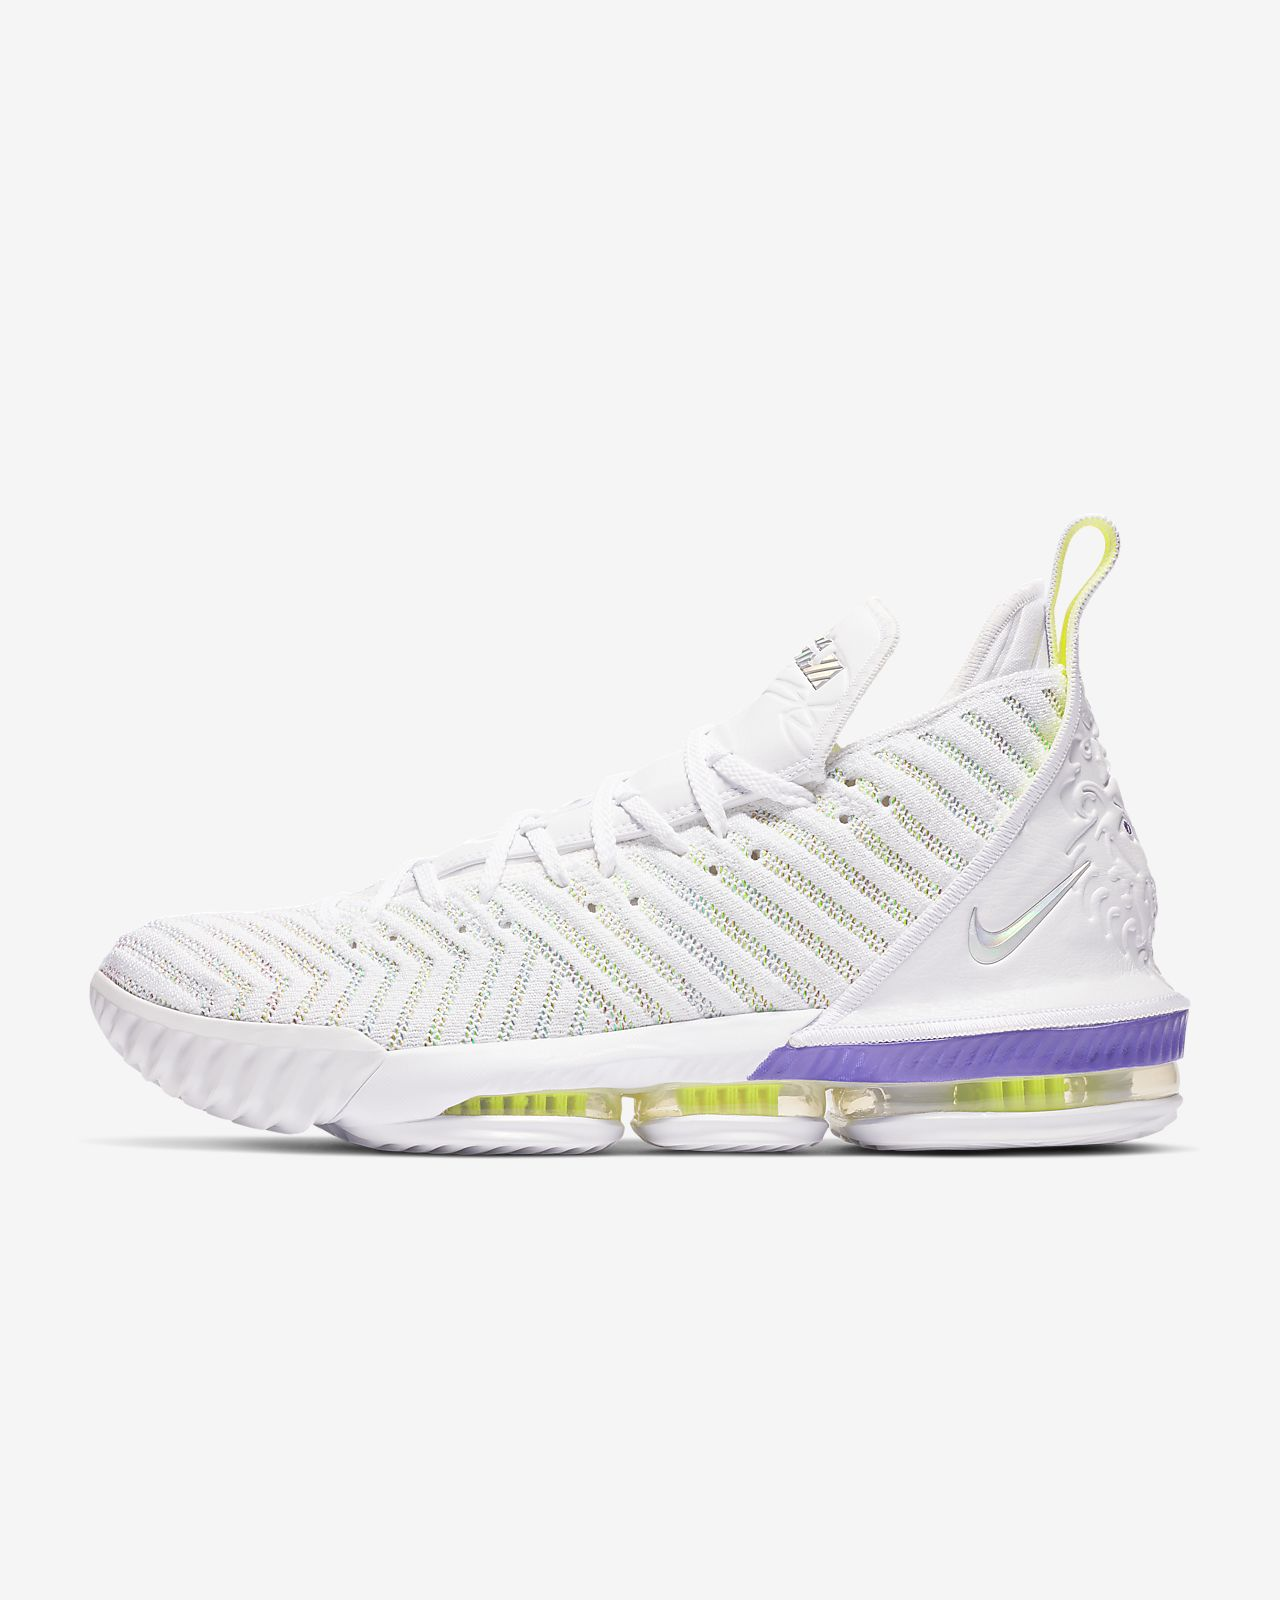 LeBron 16 Basketbalschoen